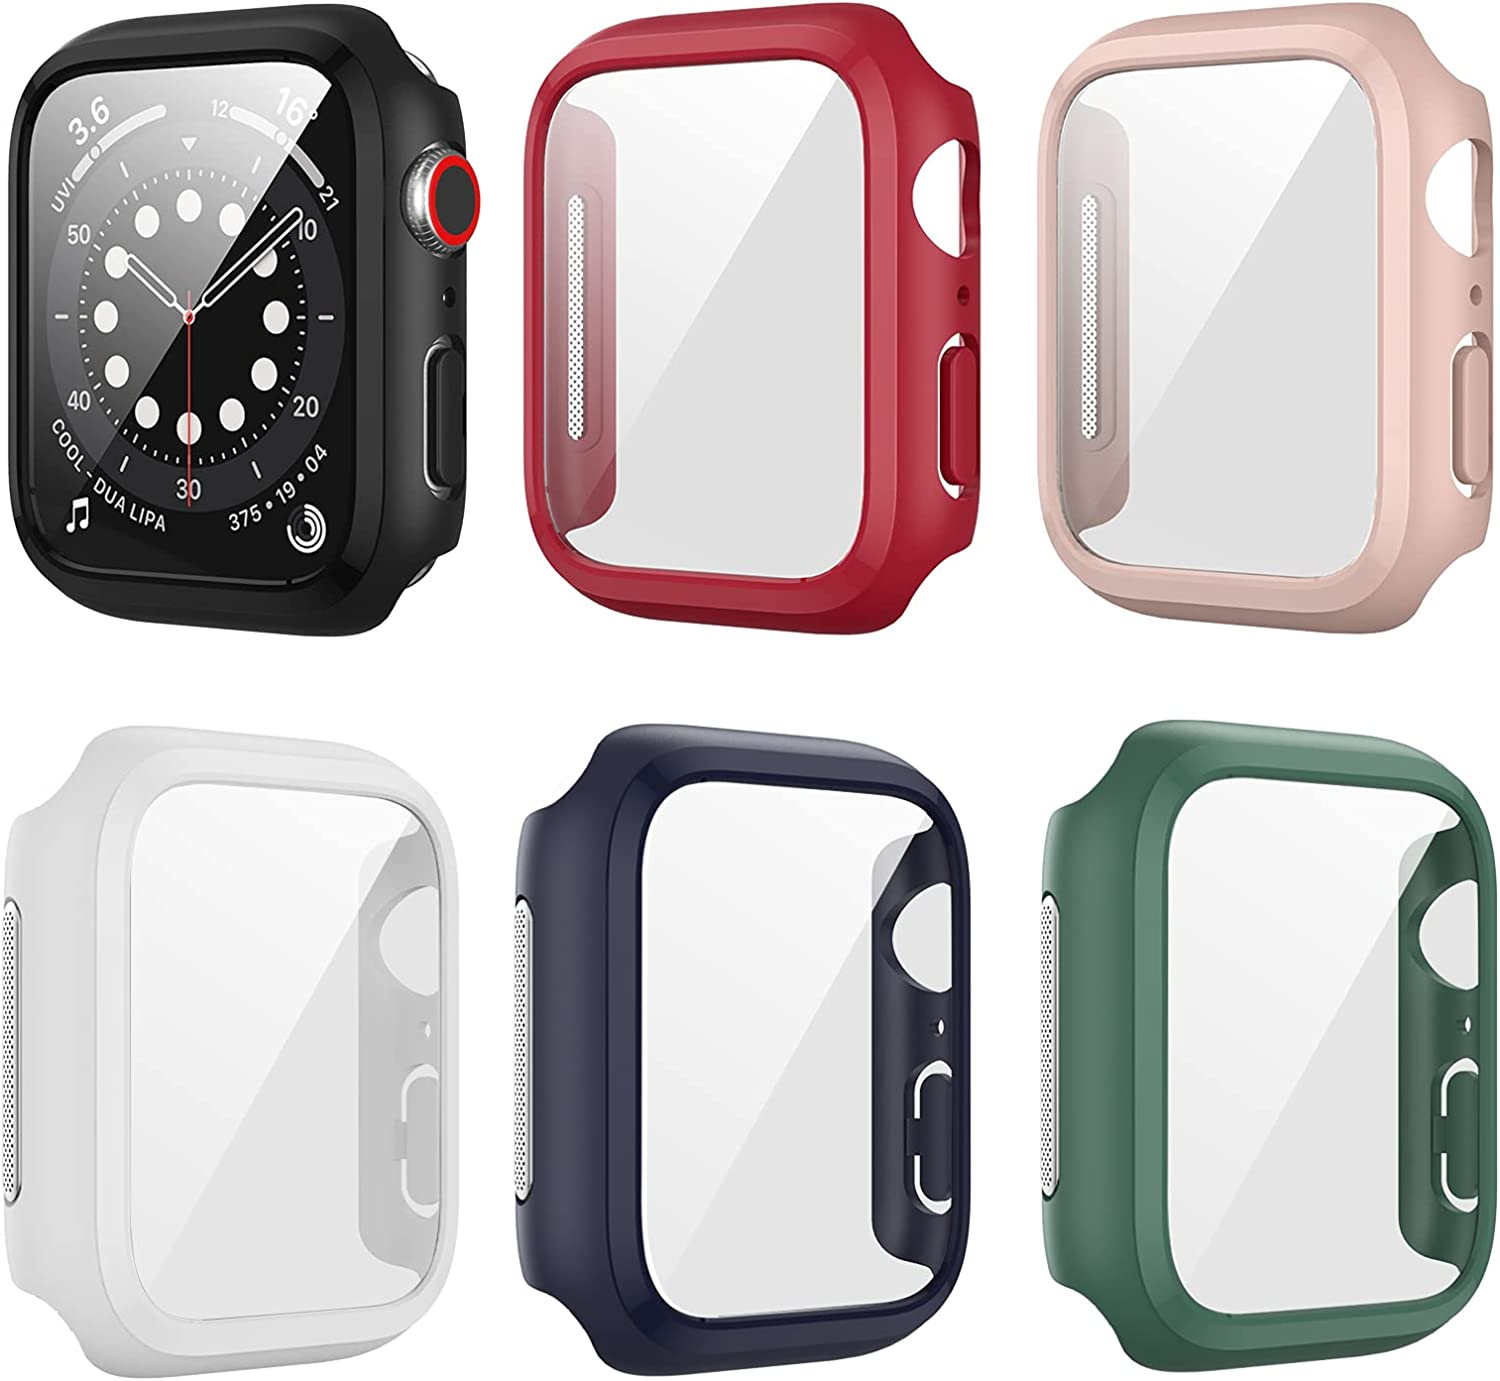 6 Pack Case for Apple Watch 40mm Series 6 5 4 SE with Tempered Glass Screen Protector, Haojavo Dustproof Metal Mesh Hard Ultra-Thin Scratch Resistant Protective Cover for iWatch Accessories